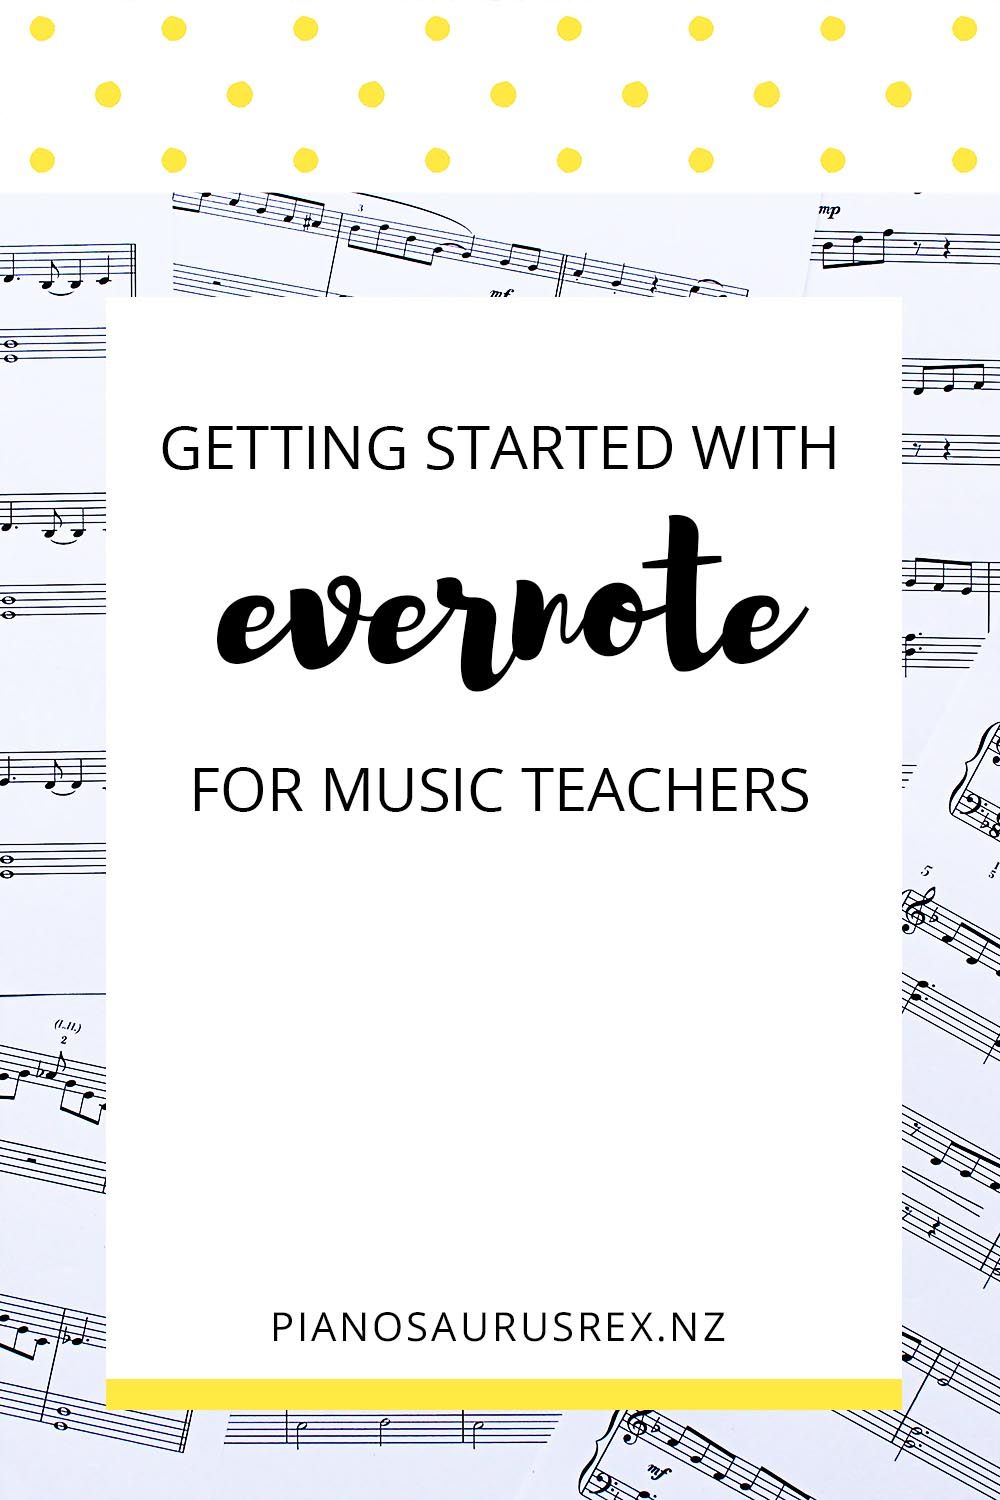 Getting Started With Evernote For Music Teachers